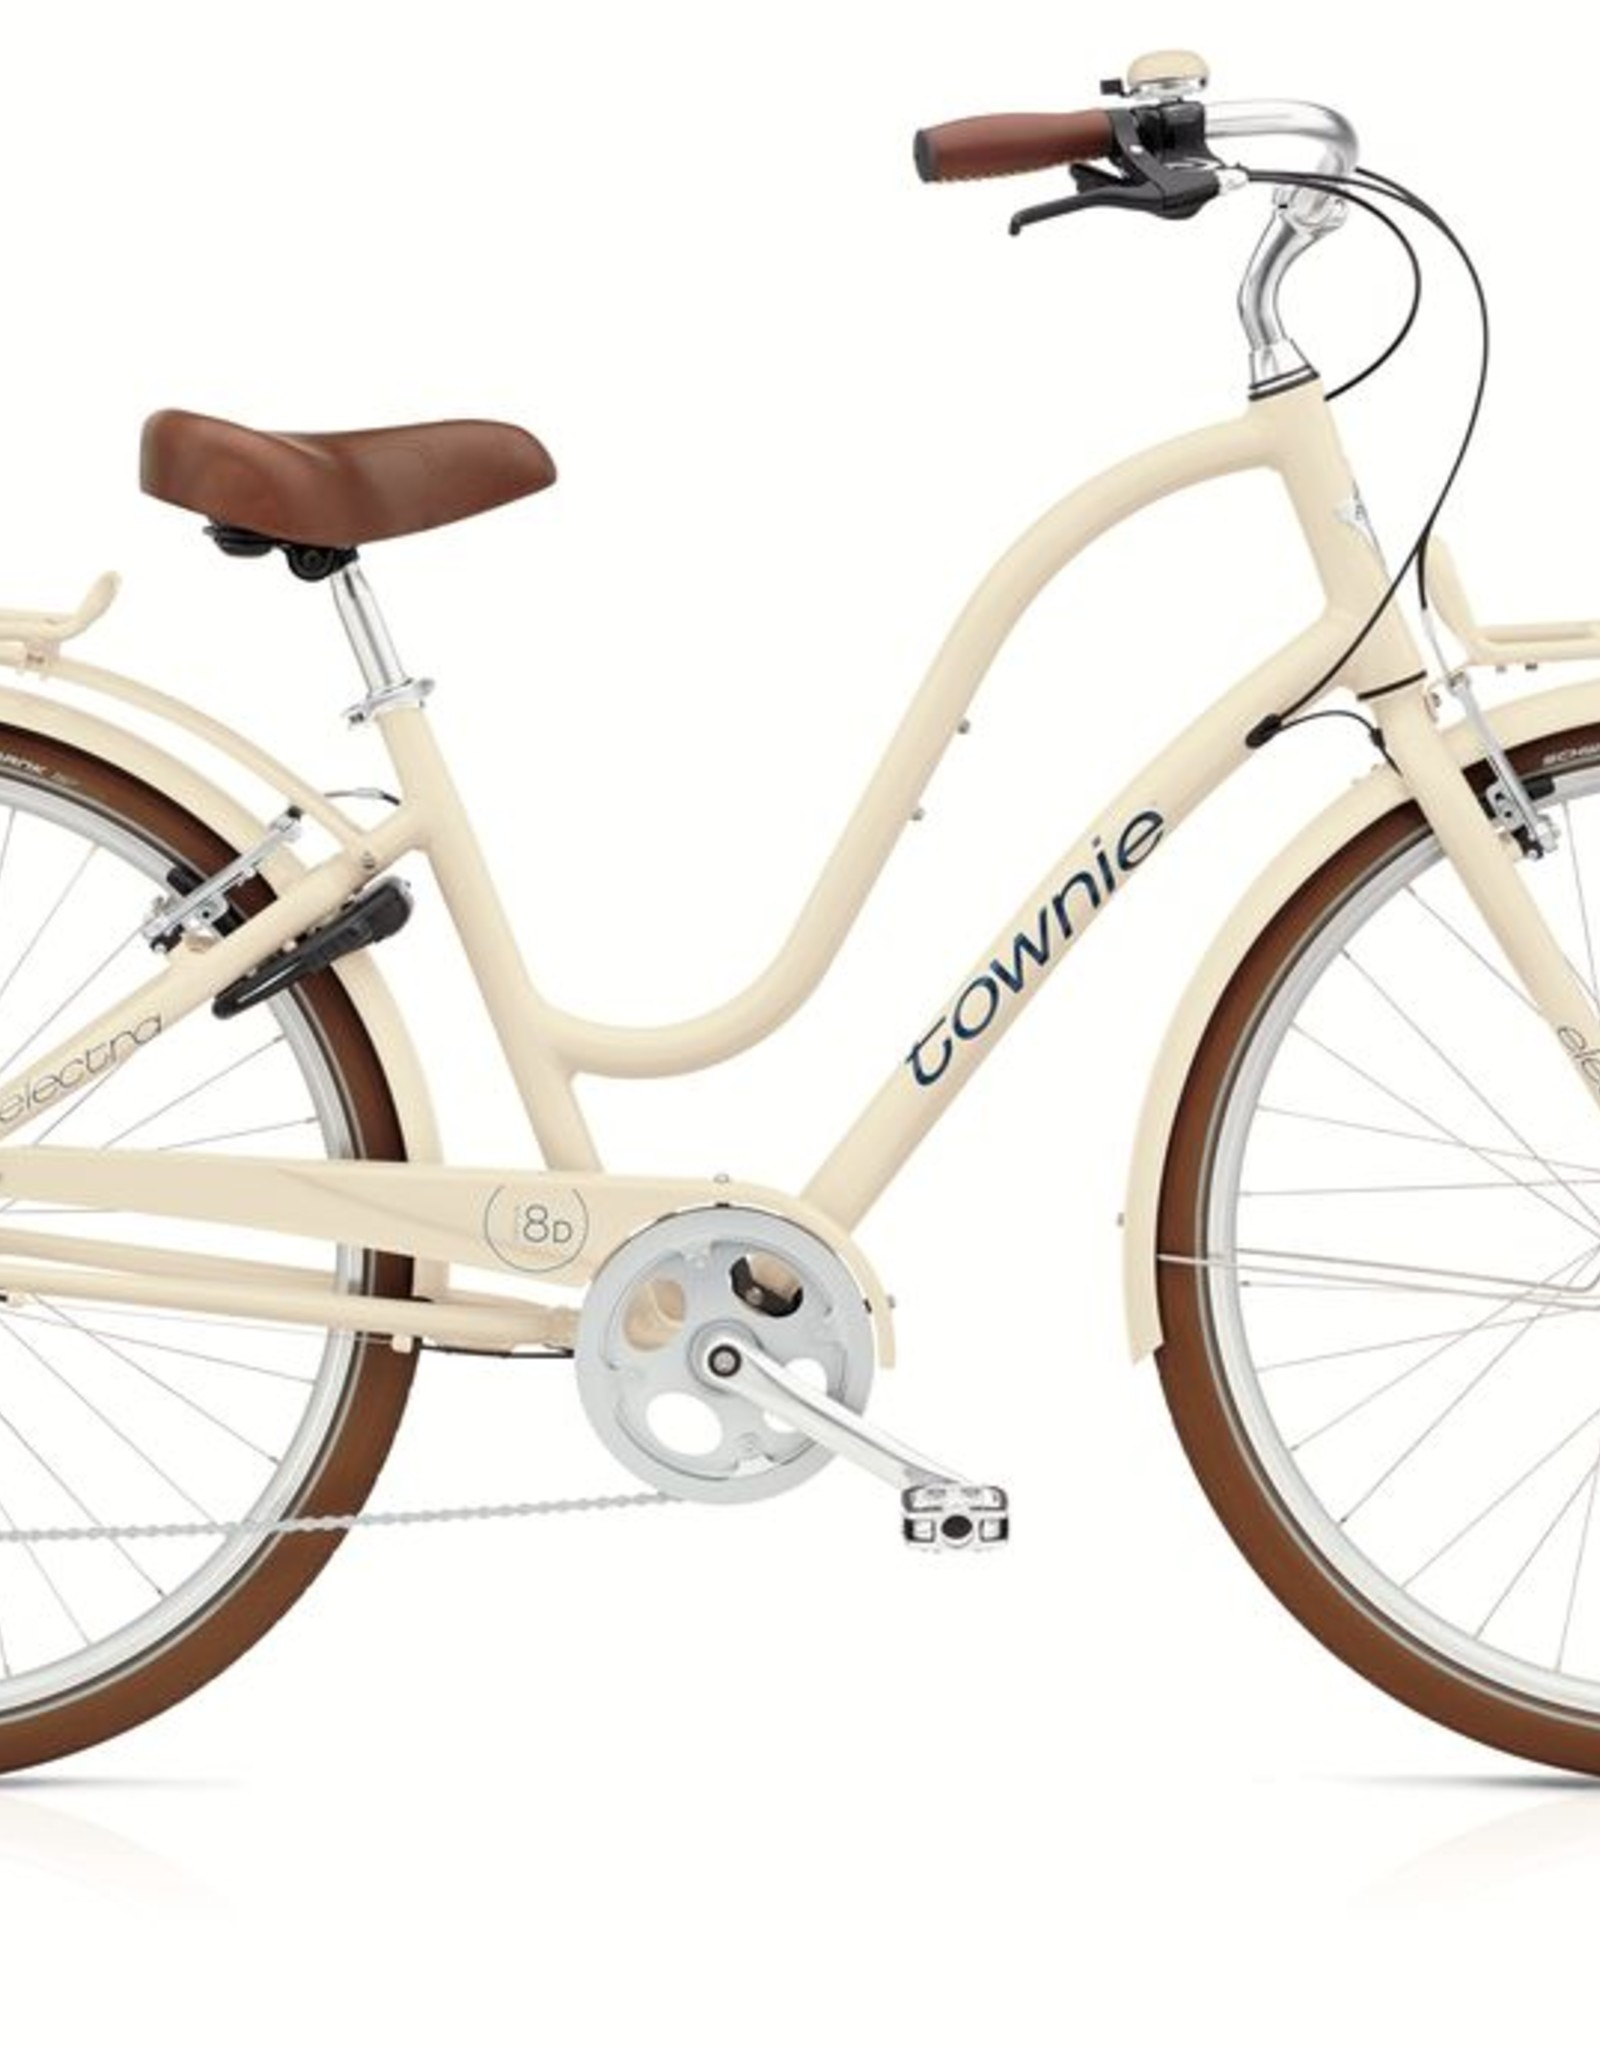 Townie Electra Townie Commute 8D, Ladies'